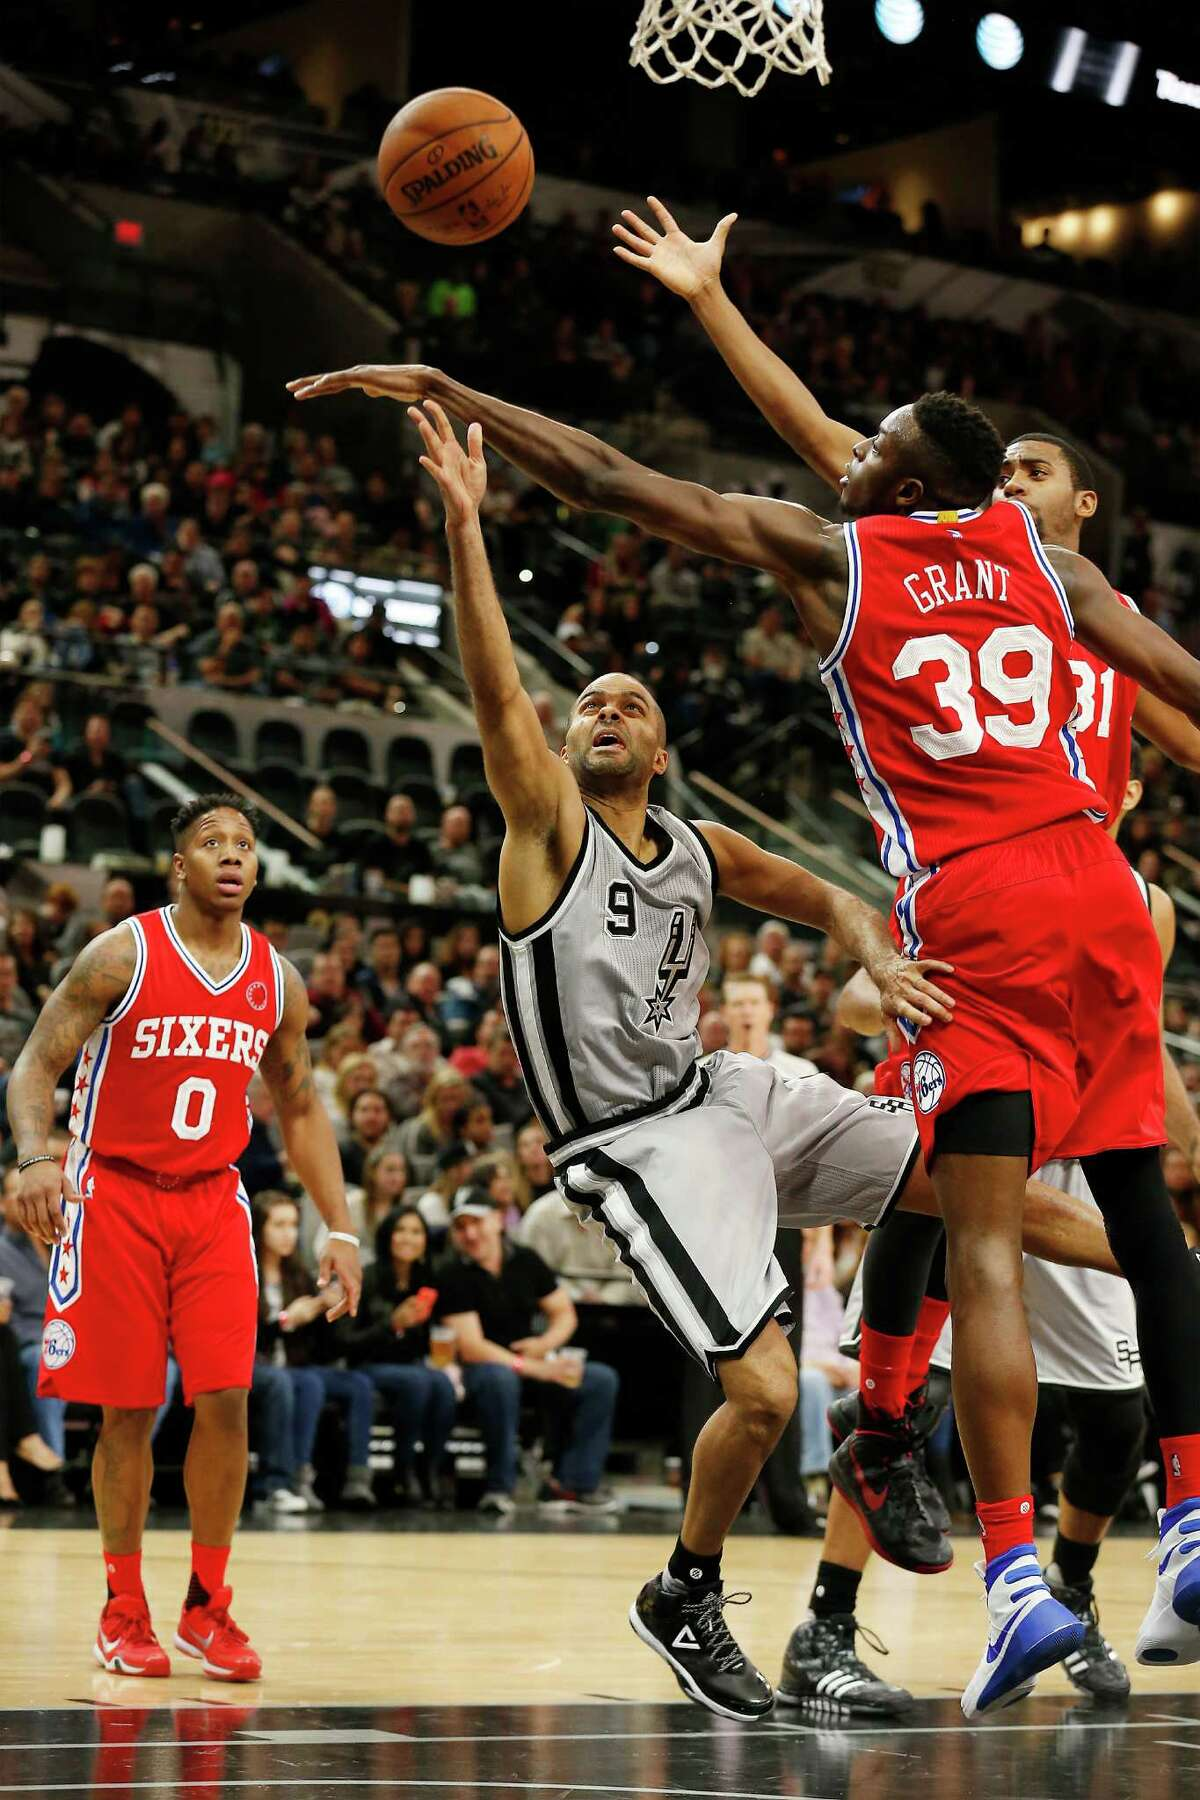 Spurs' Tony Parker (09) dives past Philadelphia 76ers Jerami Grant (39) while attempting a shot at the AT&T Center on Saturday, Nov. 14, 2015. Spurs defeated the Sixers, 92-83. (Kin Man Hui/San Antonio Express-News)